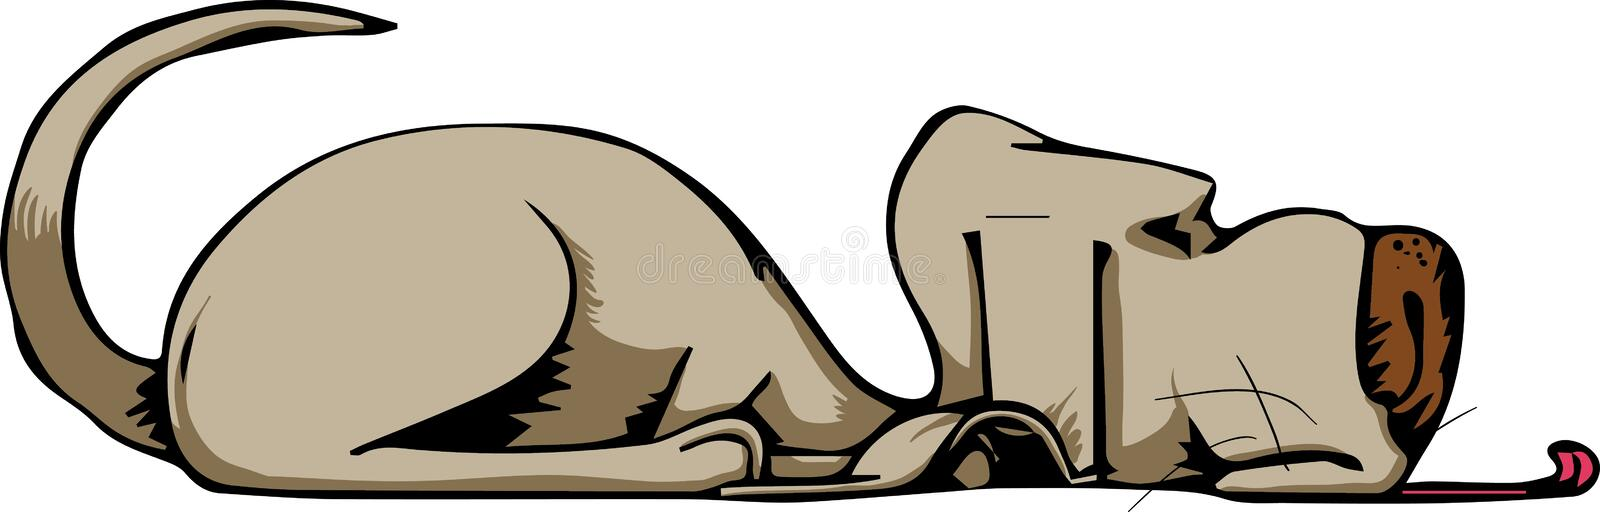 Dog laying down. This is an illustration of a super cool dog with a big tongue laying down royalty free illustration